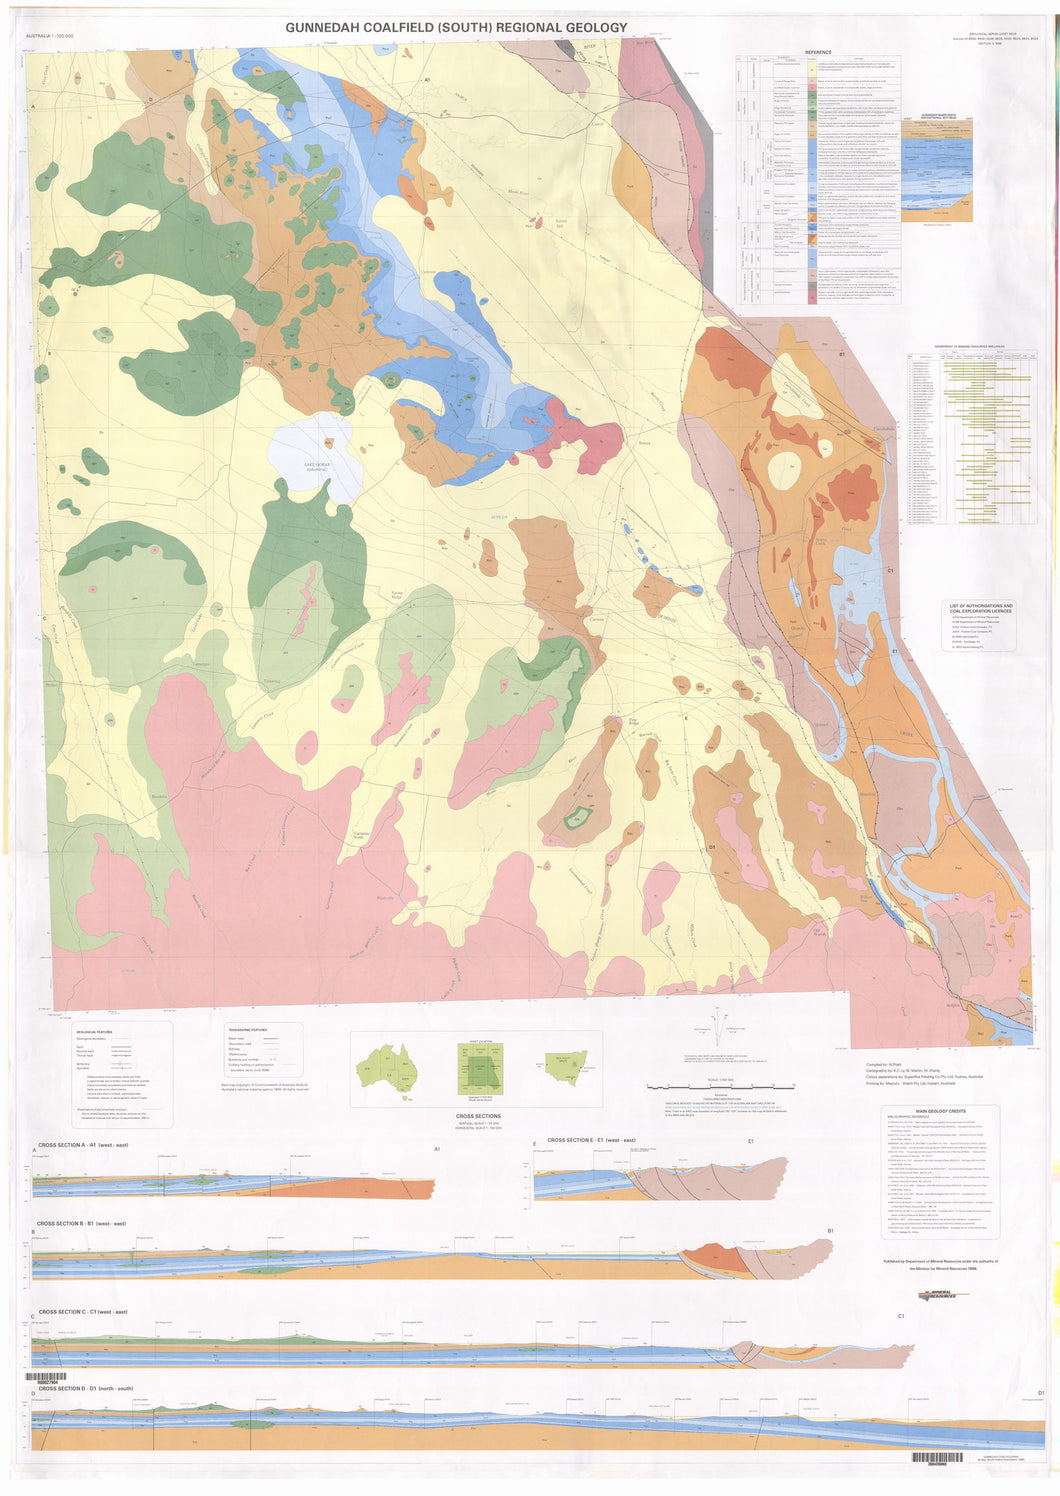 Image of Gunnedah Coalfield South Regional 1:100000 Geology map